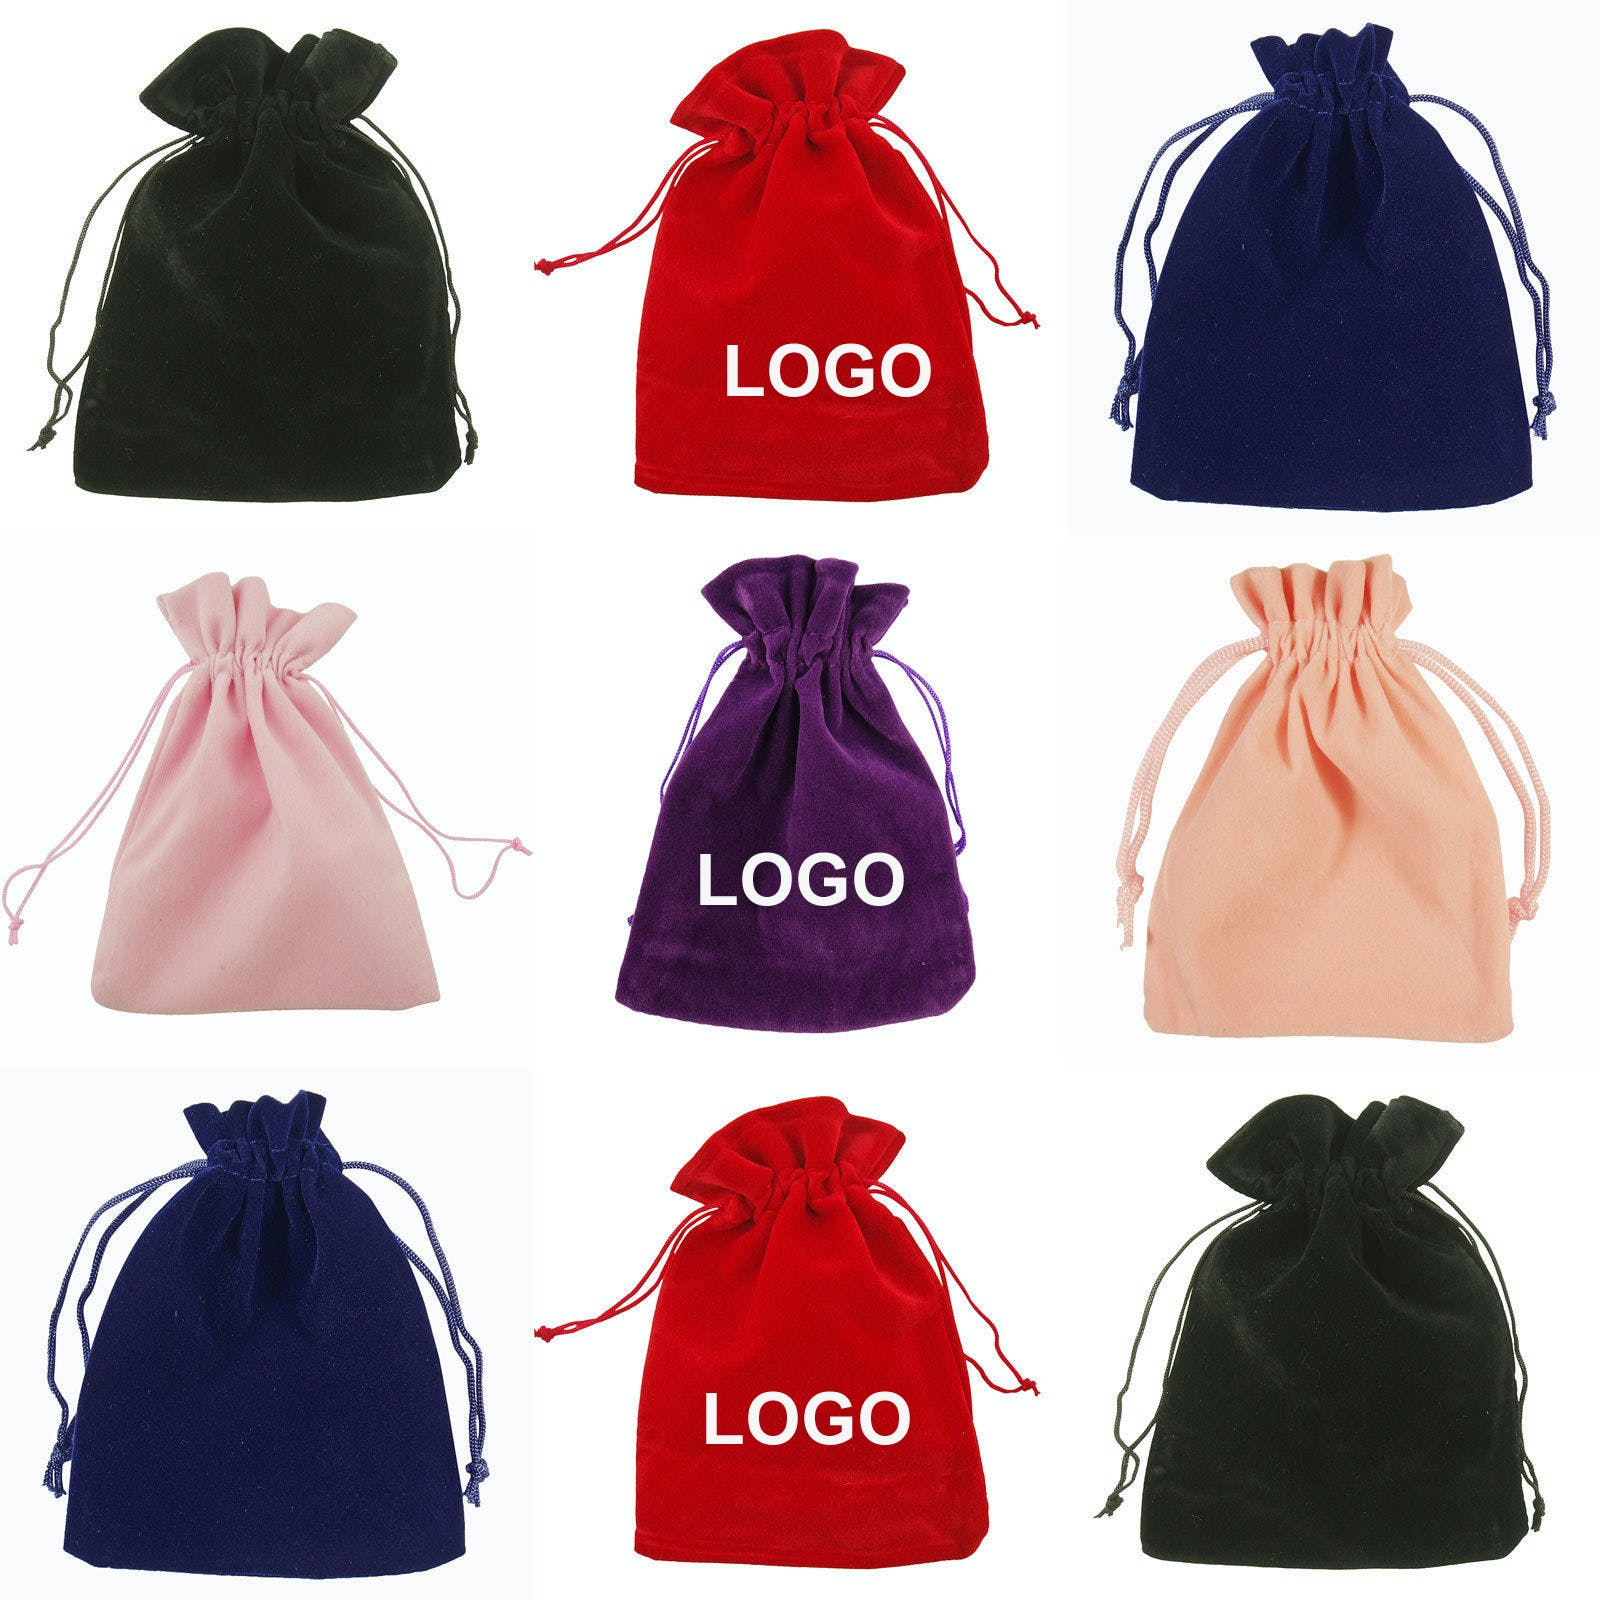 Velvet Pouch (Item # BANNQ-JOBPV) Velvet bag sold by InkEasy